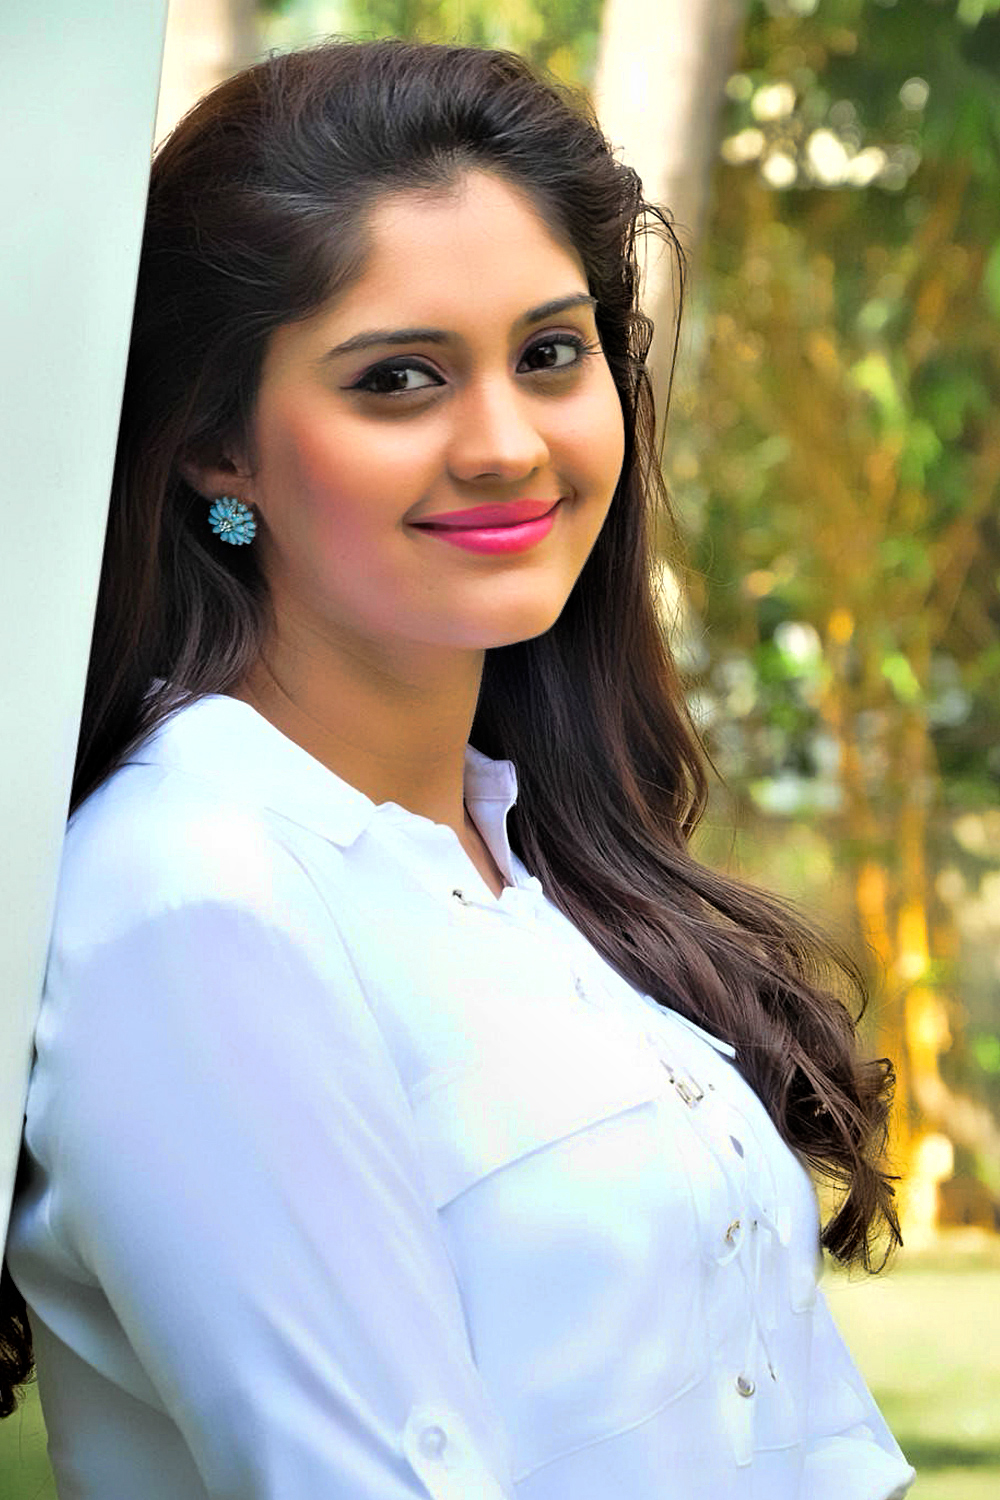 Download Lovely Wallpapers With Quotes Hot Hd Wallpapers And Images Of Actress Surabhi